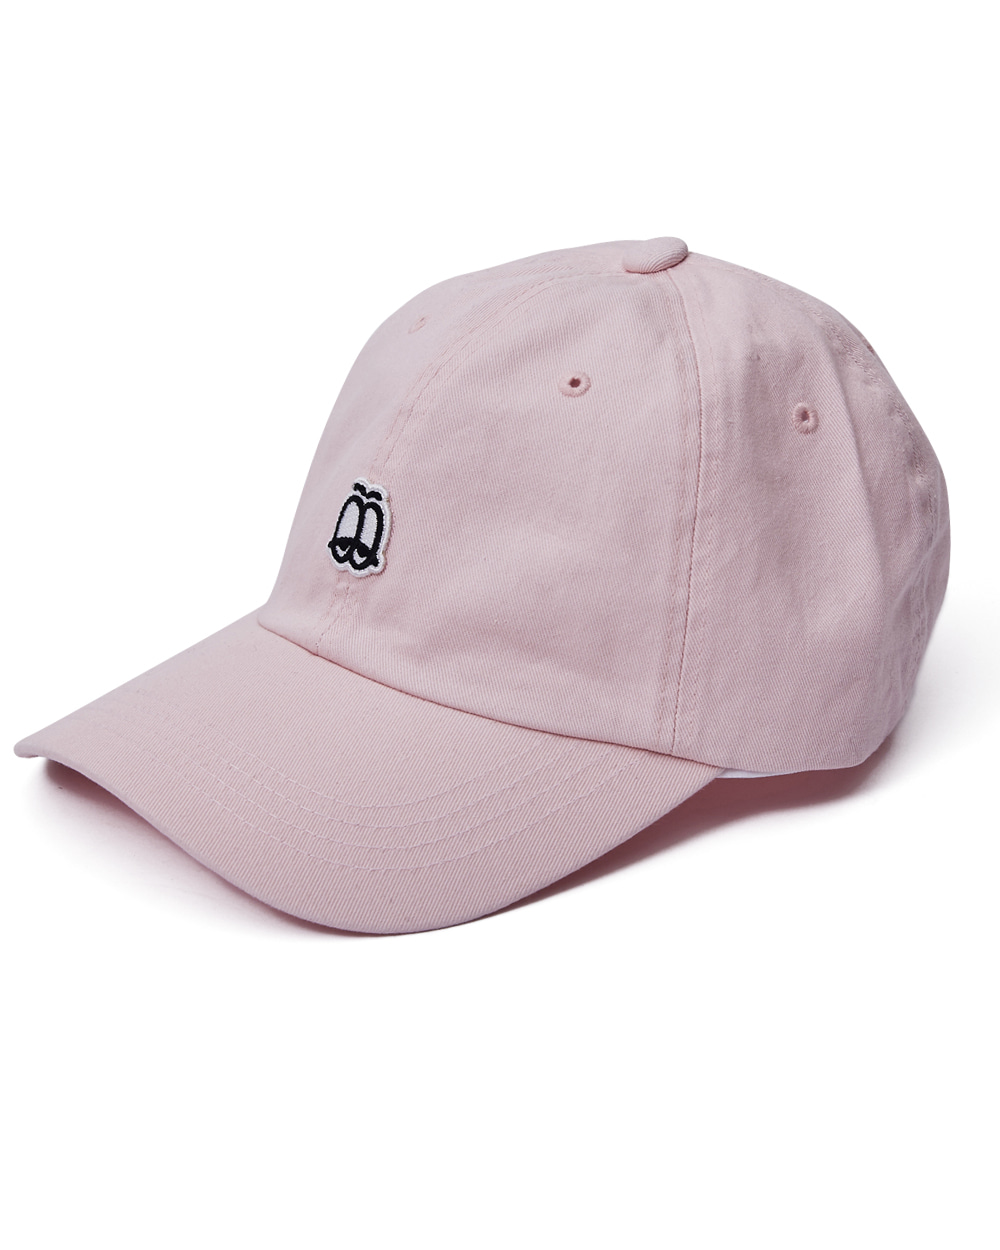 SLEEPY HEAD BALLCAP | PINK